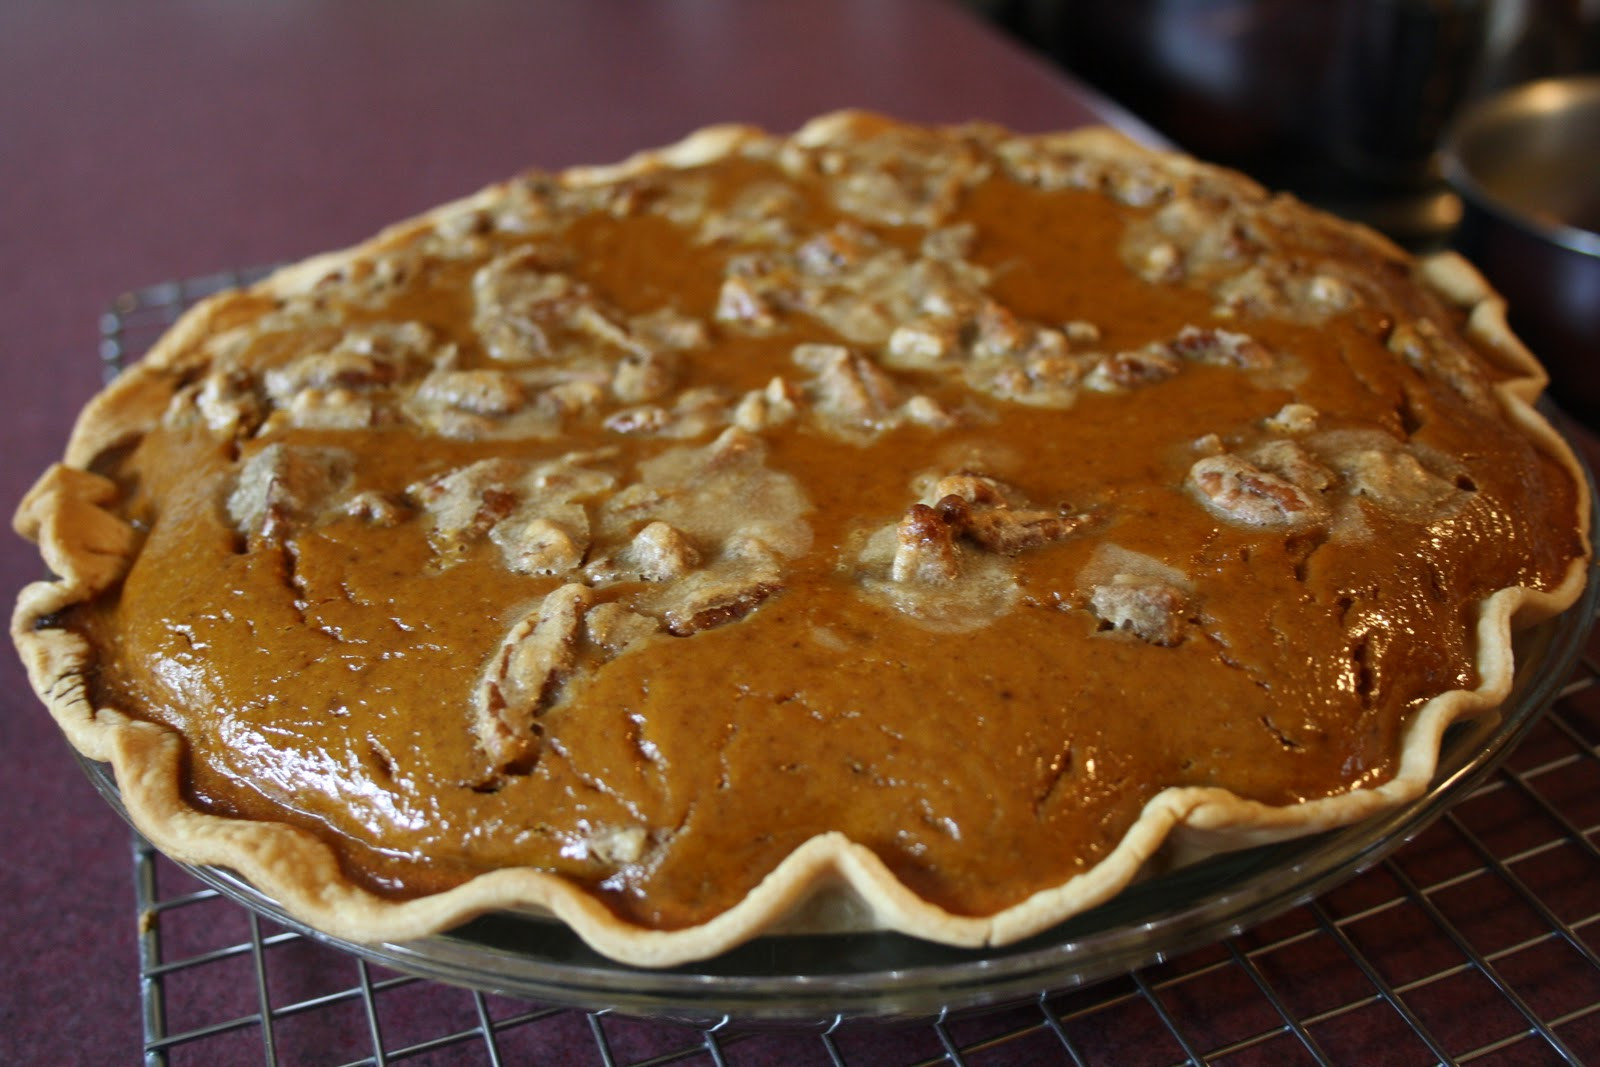 Pumpkin Pie Thanksgiving  Meals with Michelle Turkey & Pumpkin Pie Happy